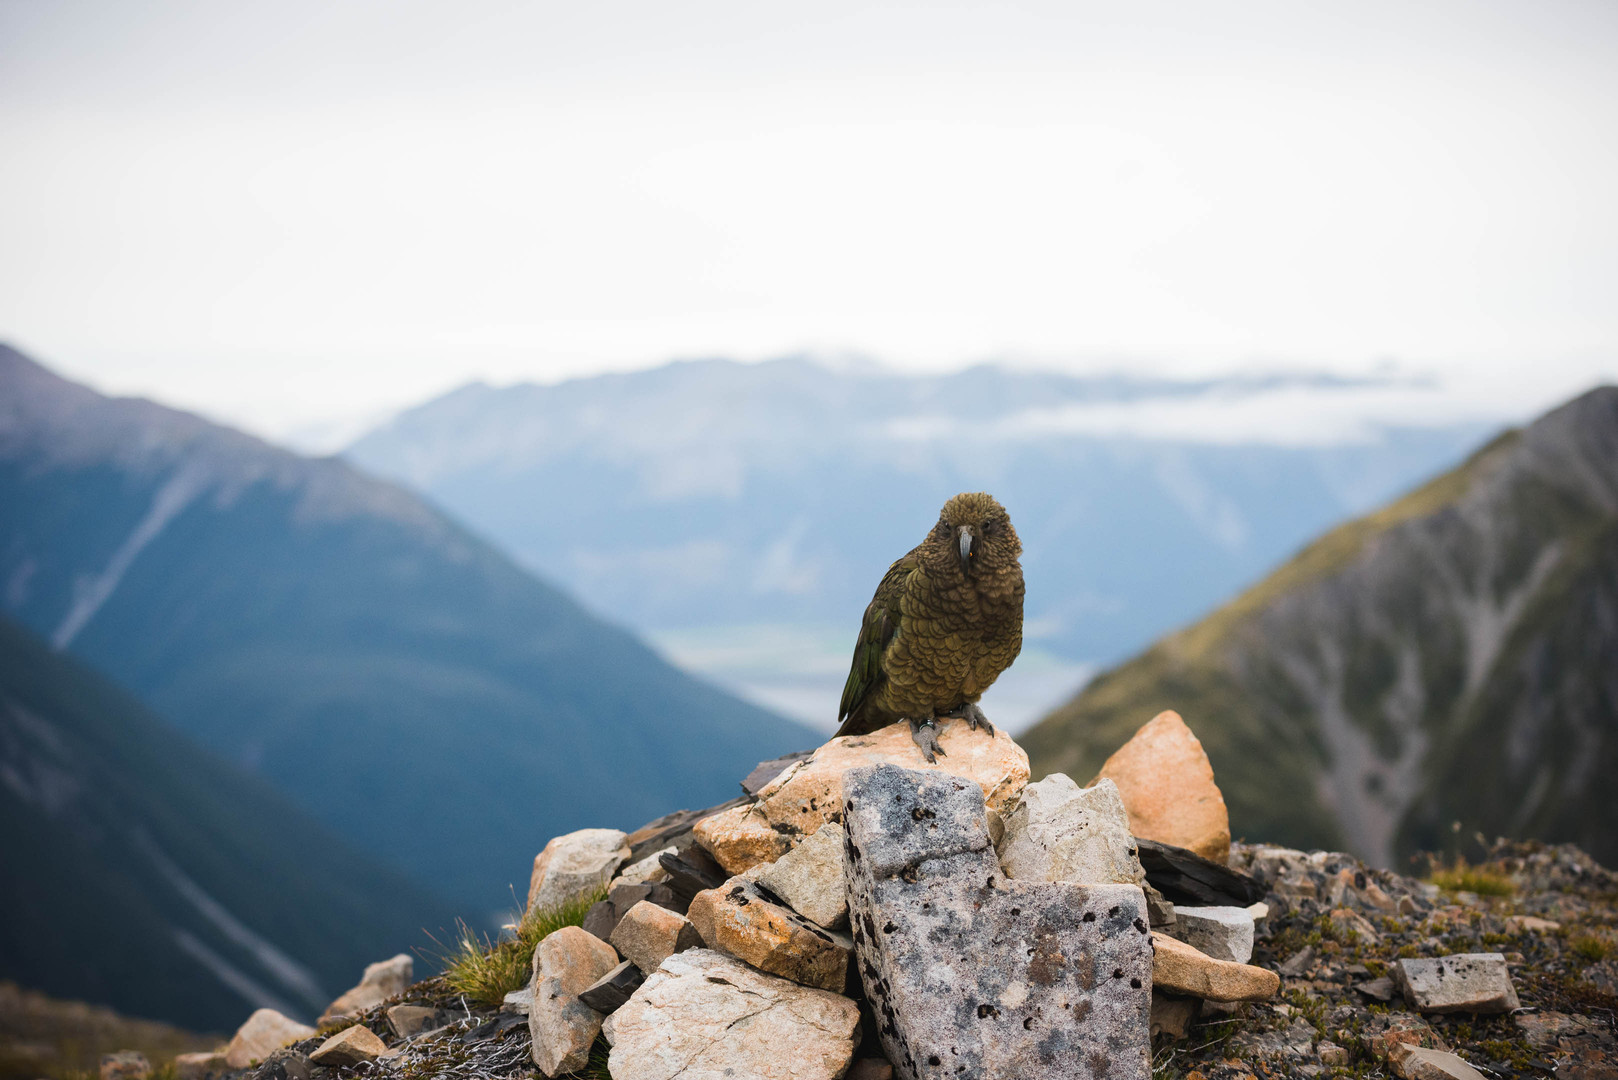 Kea. New Zealand. Colm Keating Photography.